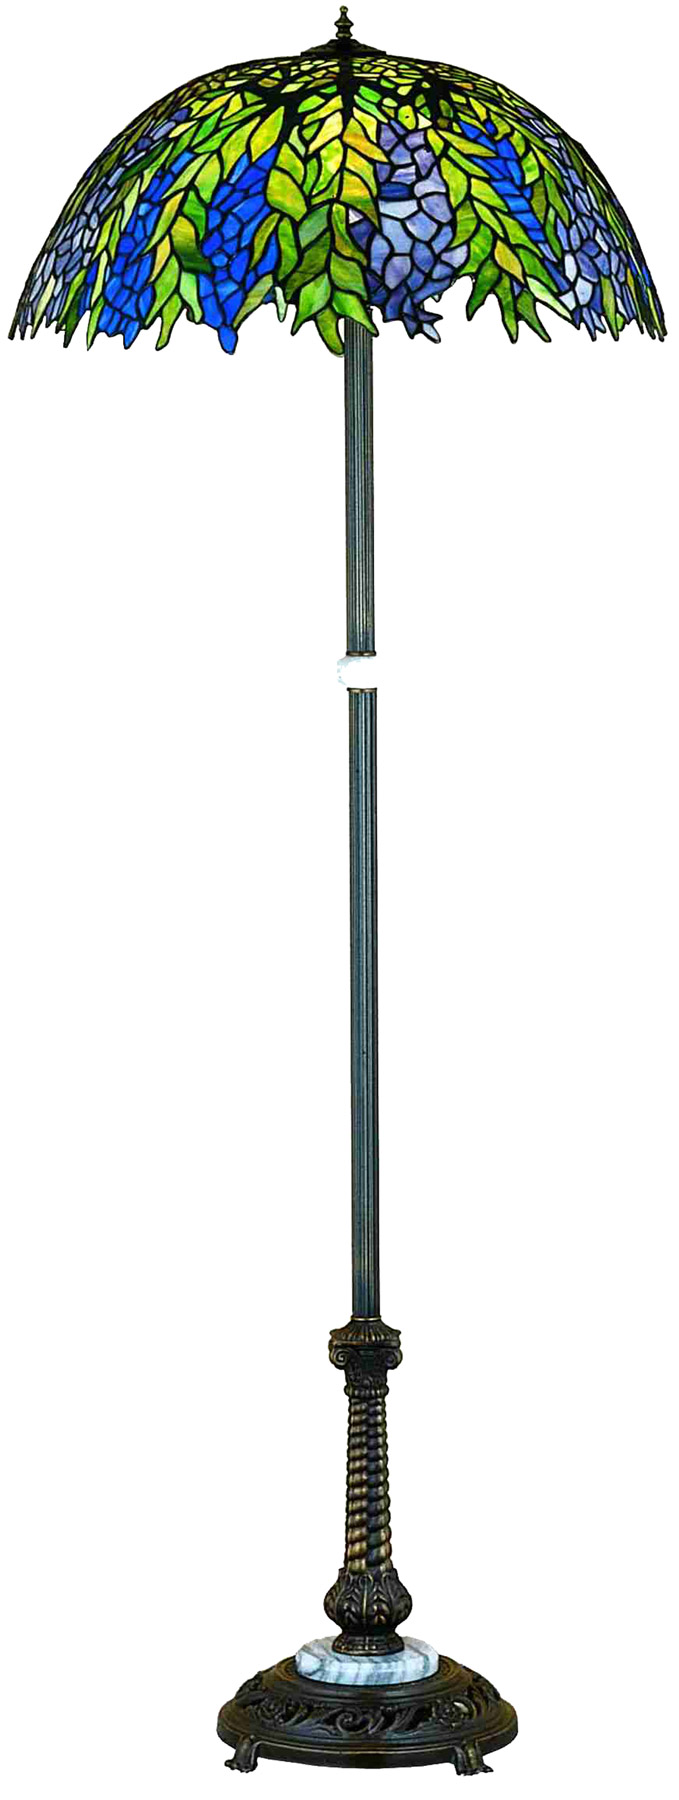 Meyda 31113 Tiffany Honey Locust Floor Lamp